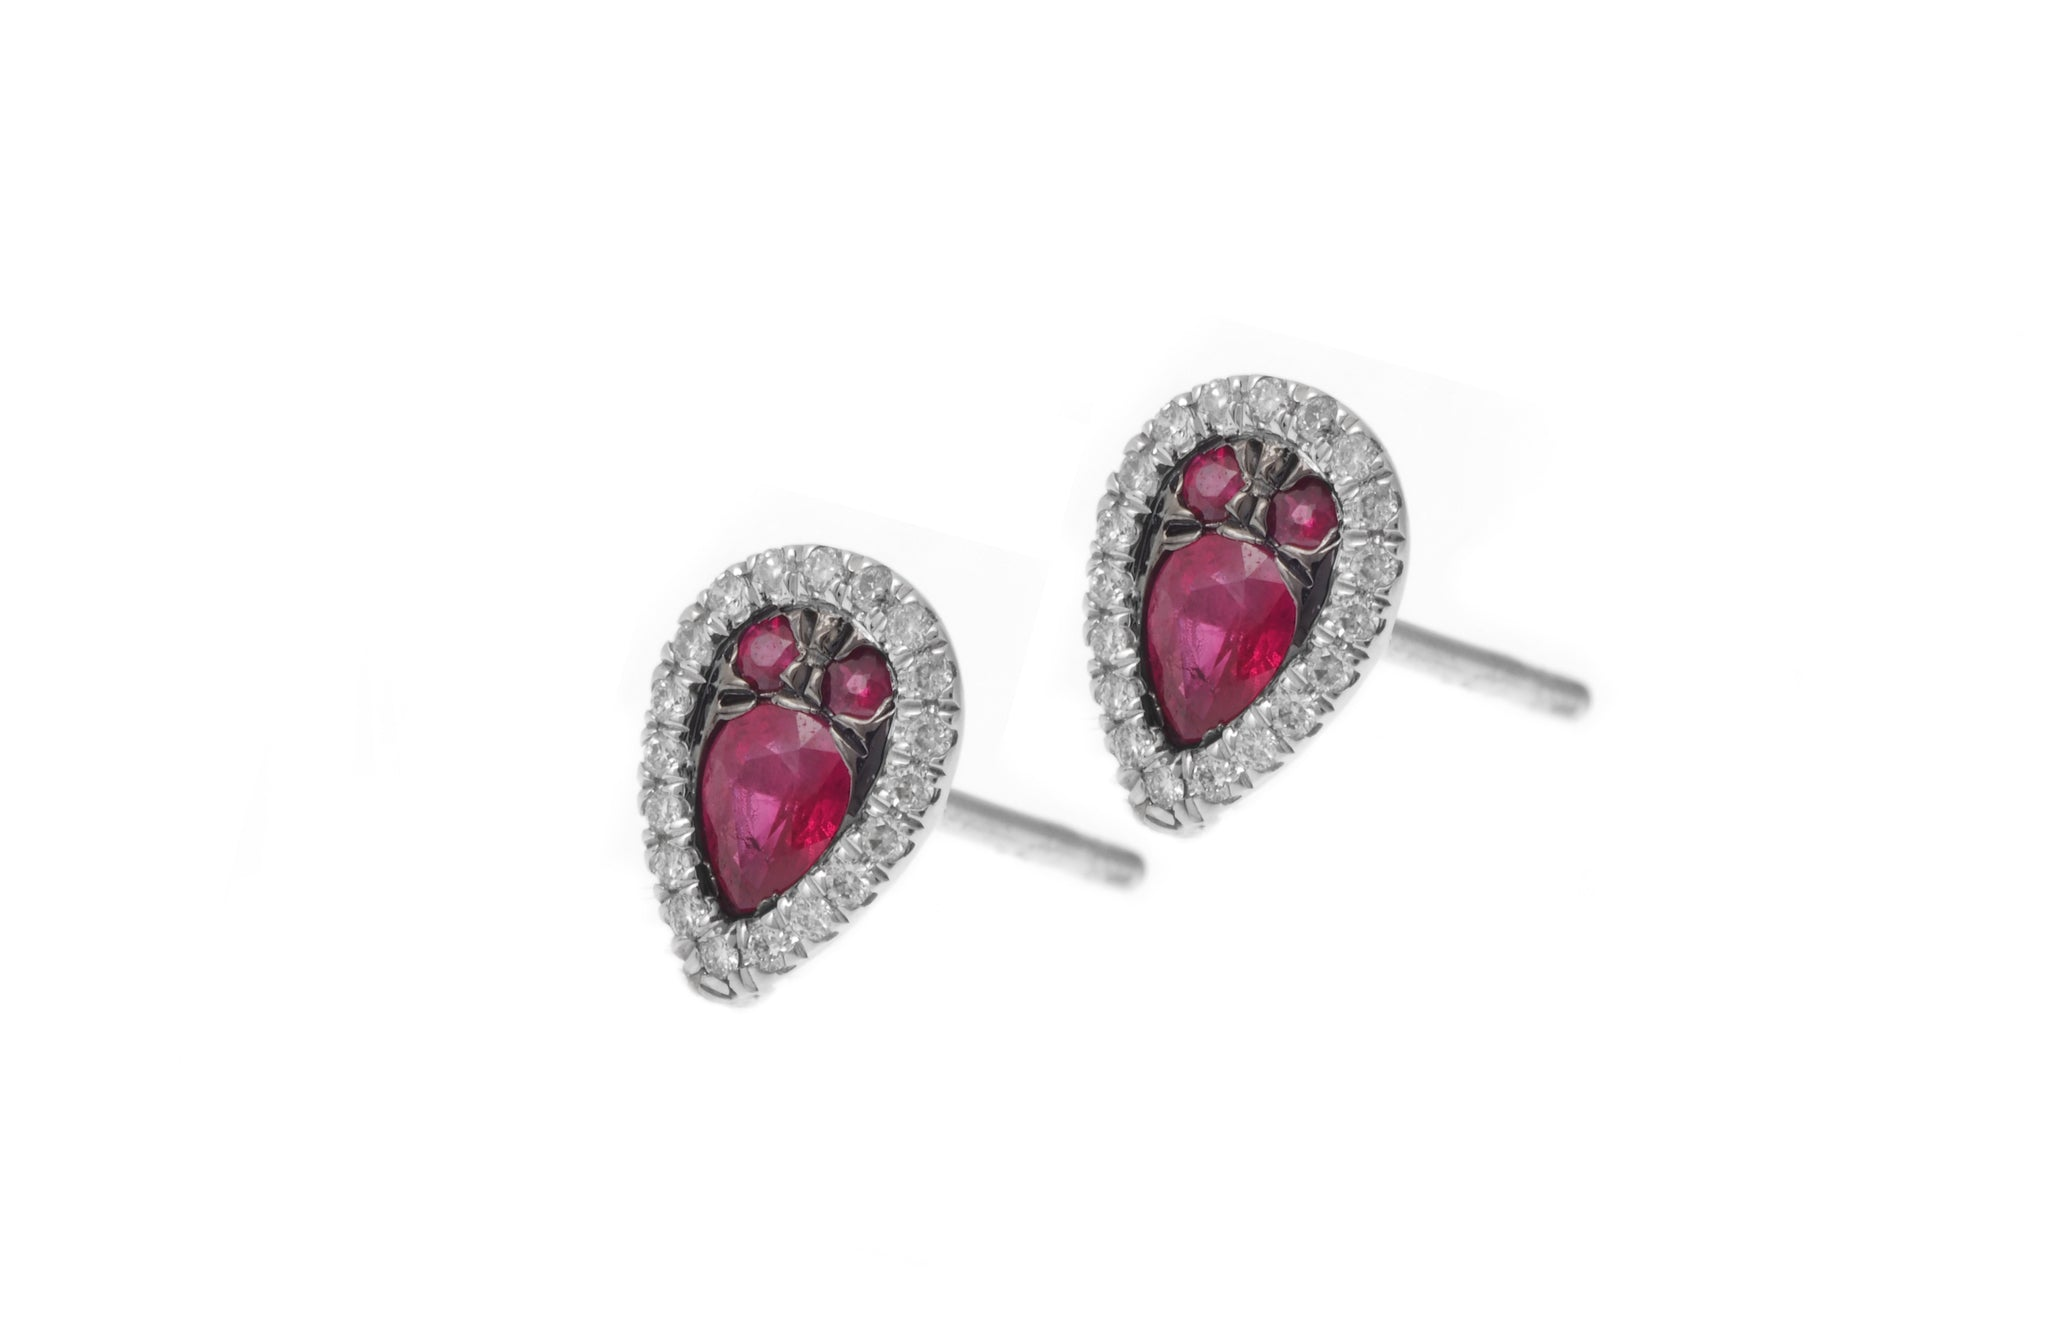 18ct White Gold Diamond and Ruby Stud Earrings HF05154E-W-R